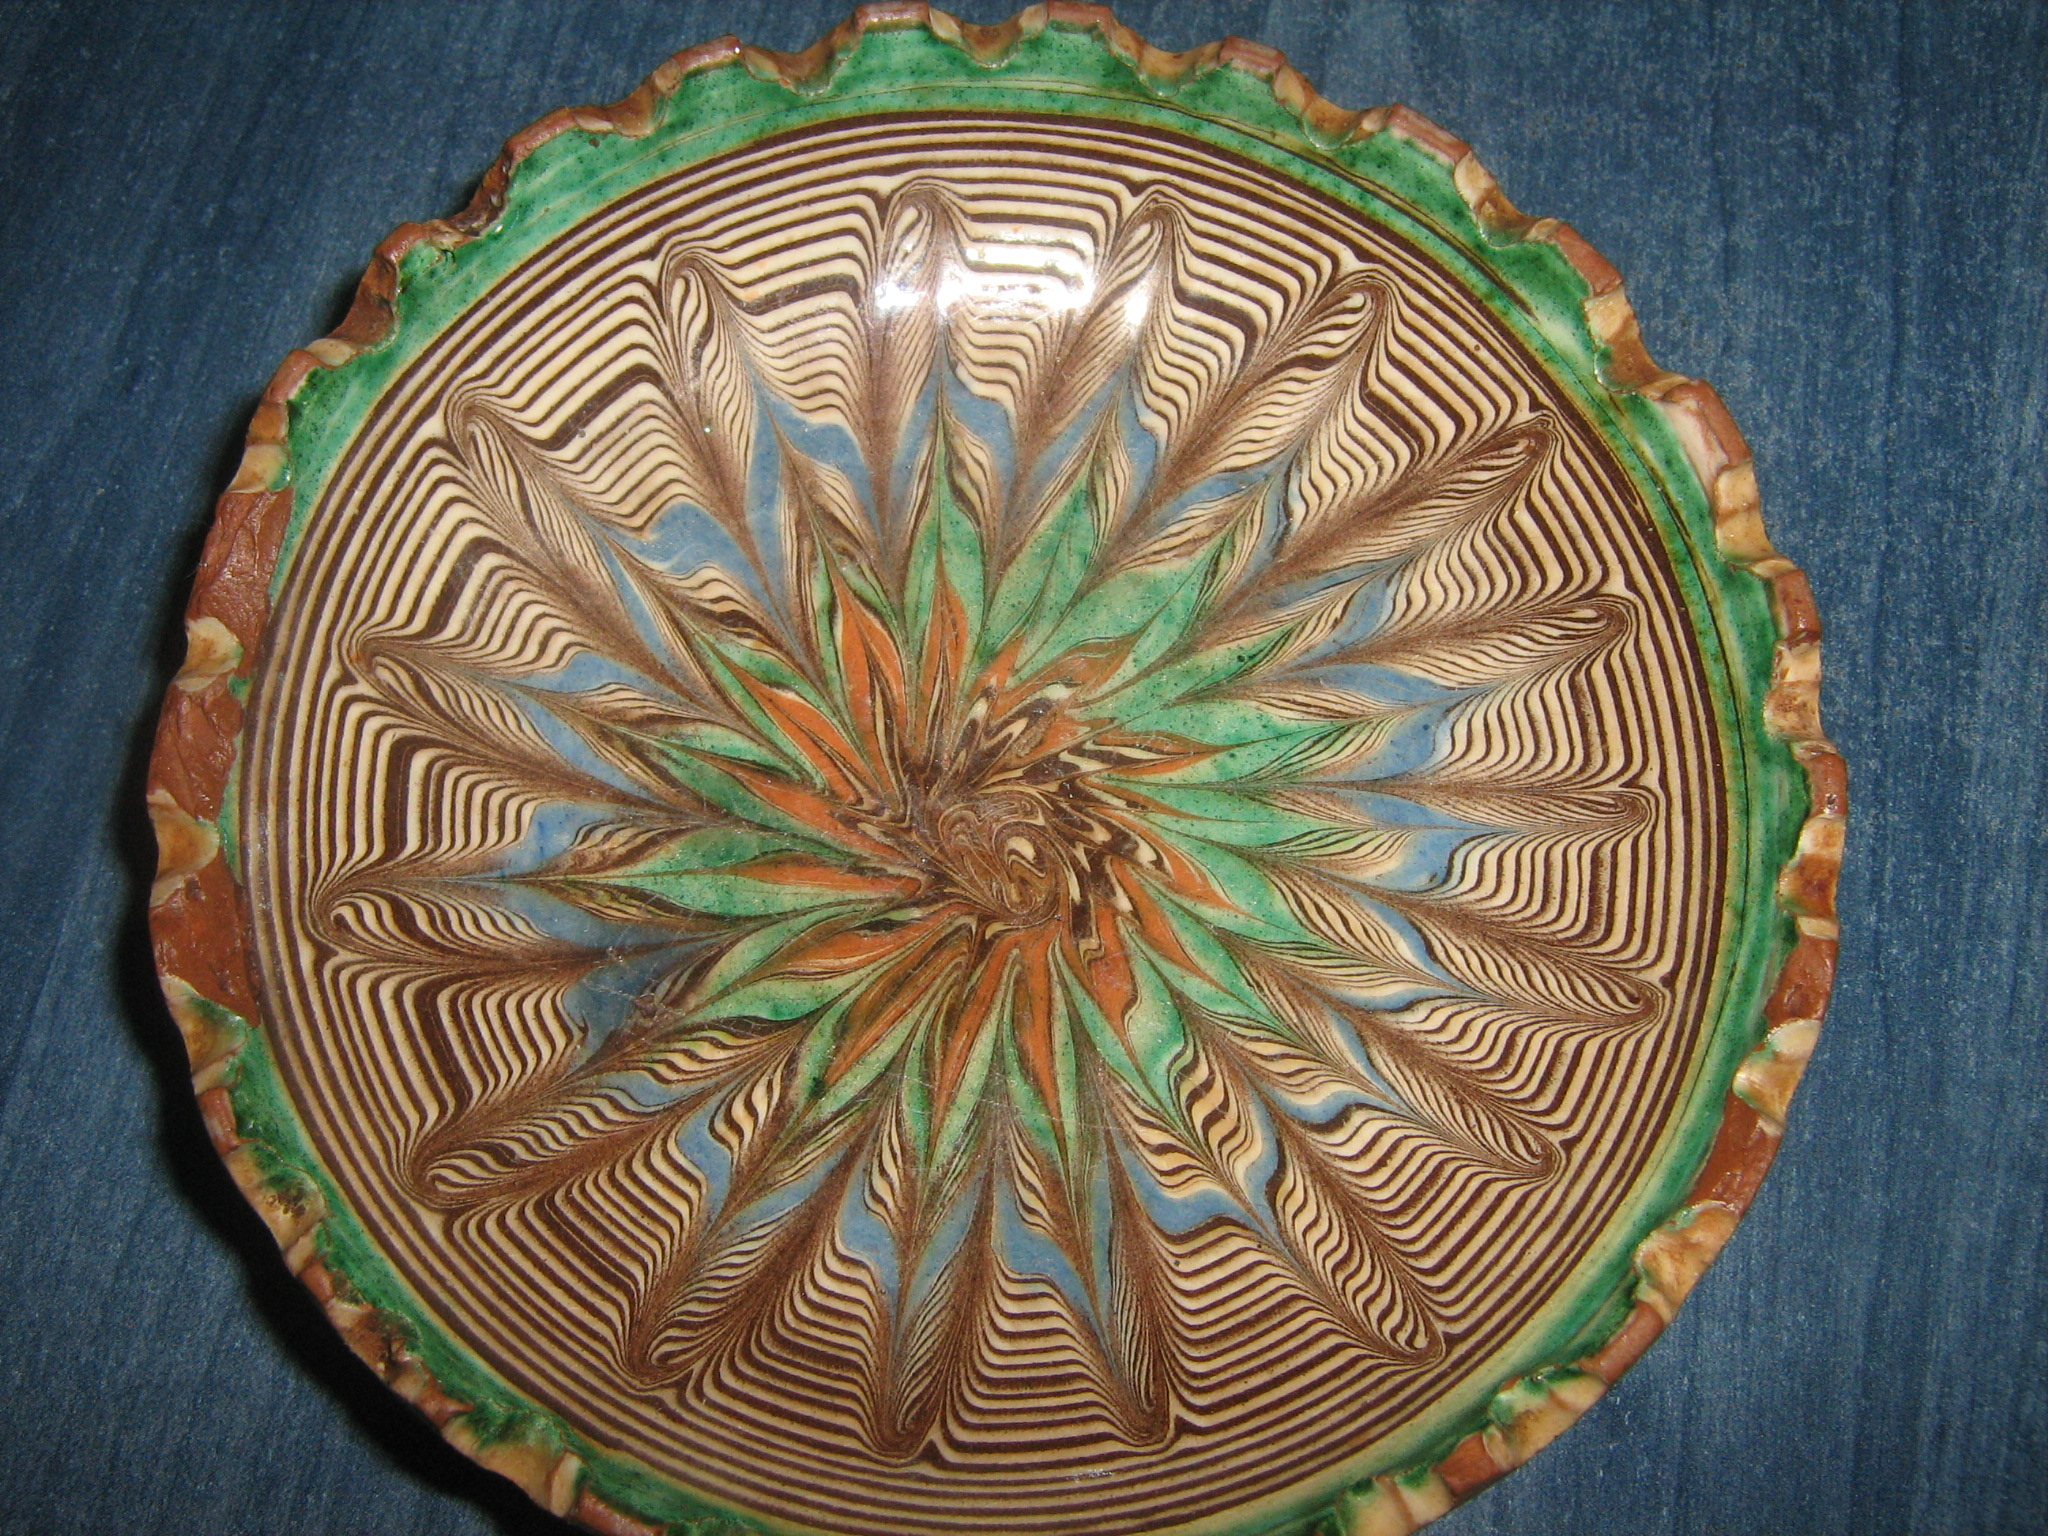 Large Decorative Ceramic Plates Fileromanian Decorative Plate Wikimedia Commons : large decorative plate - pezcame.com